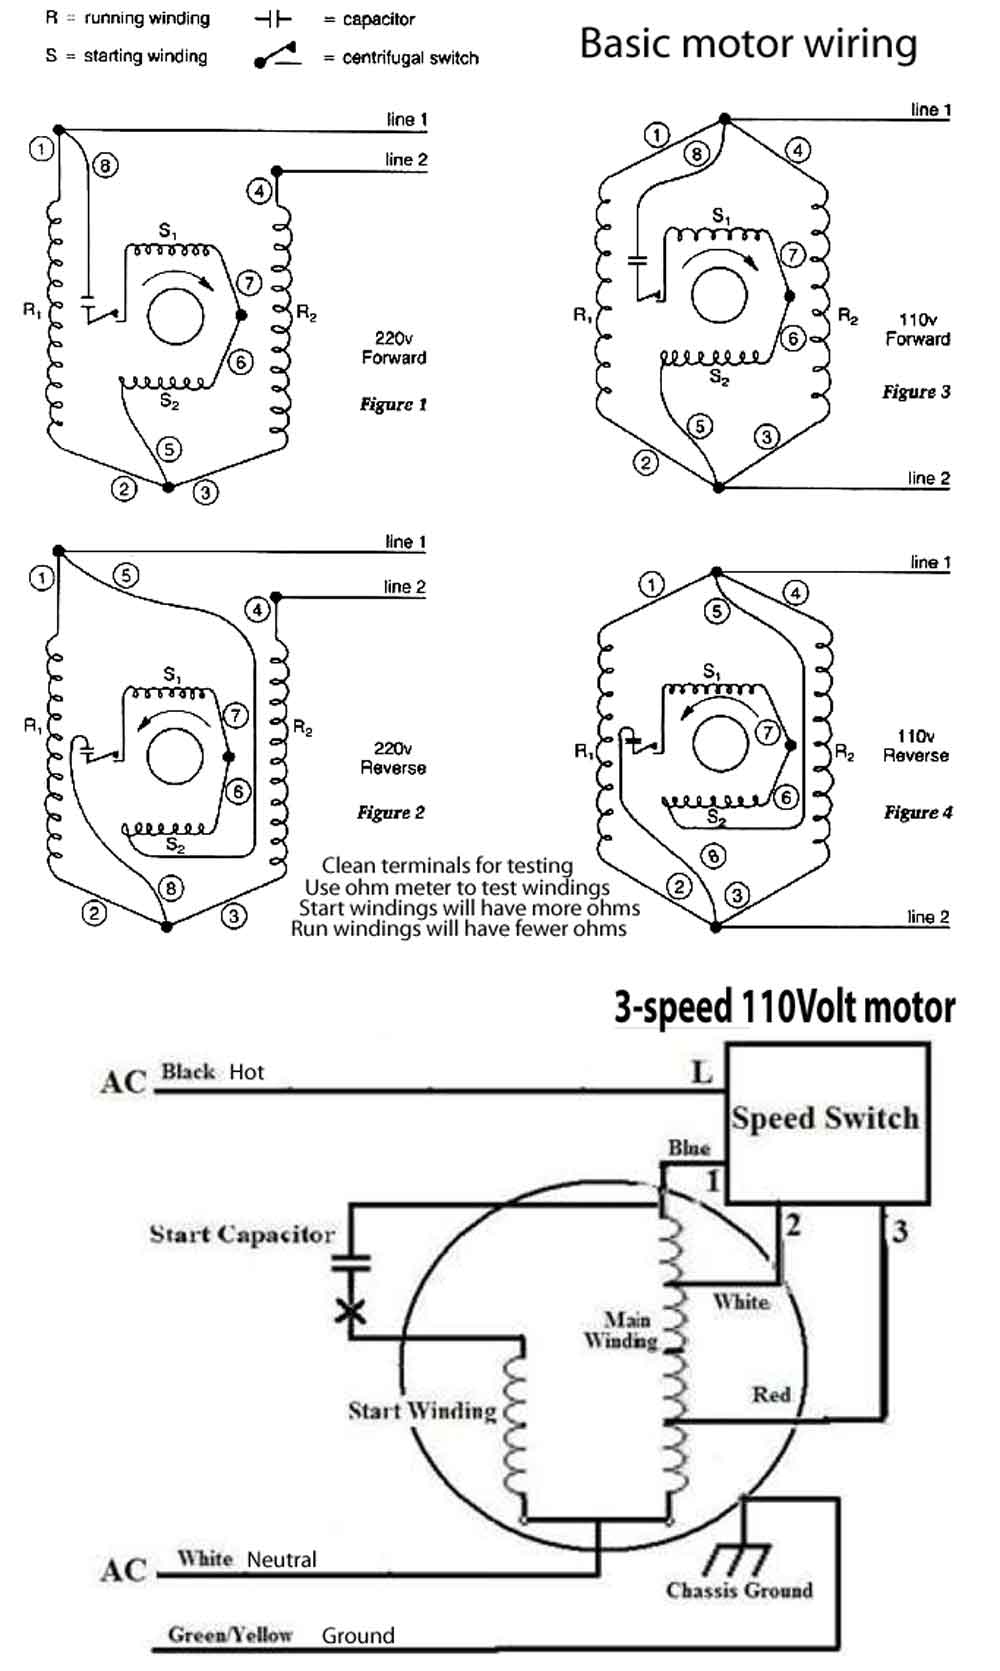 Motor wiring 500 how to wire 3 speed fan switch Basic Electrical Wiring Diagrams at bayanpartner.co